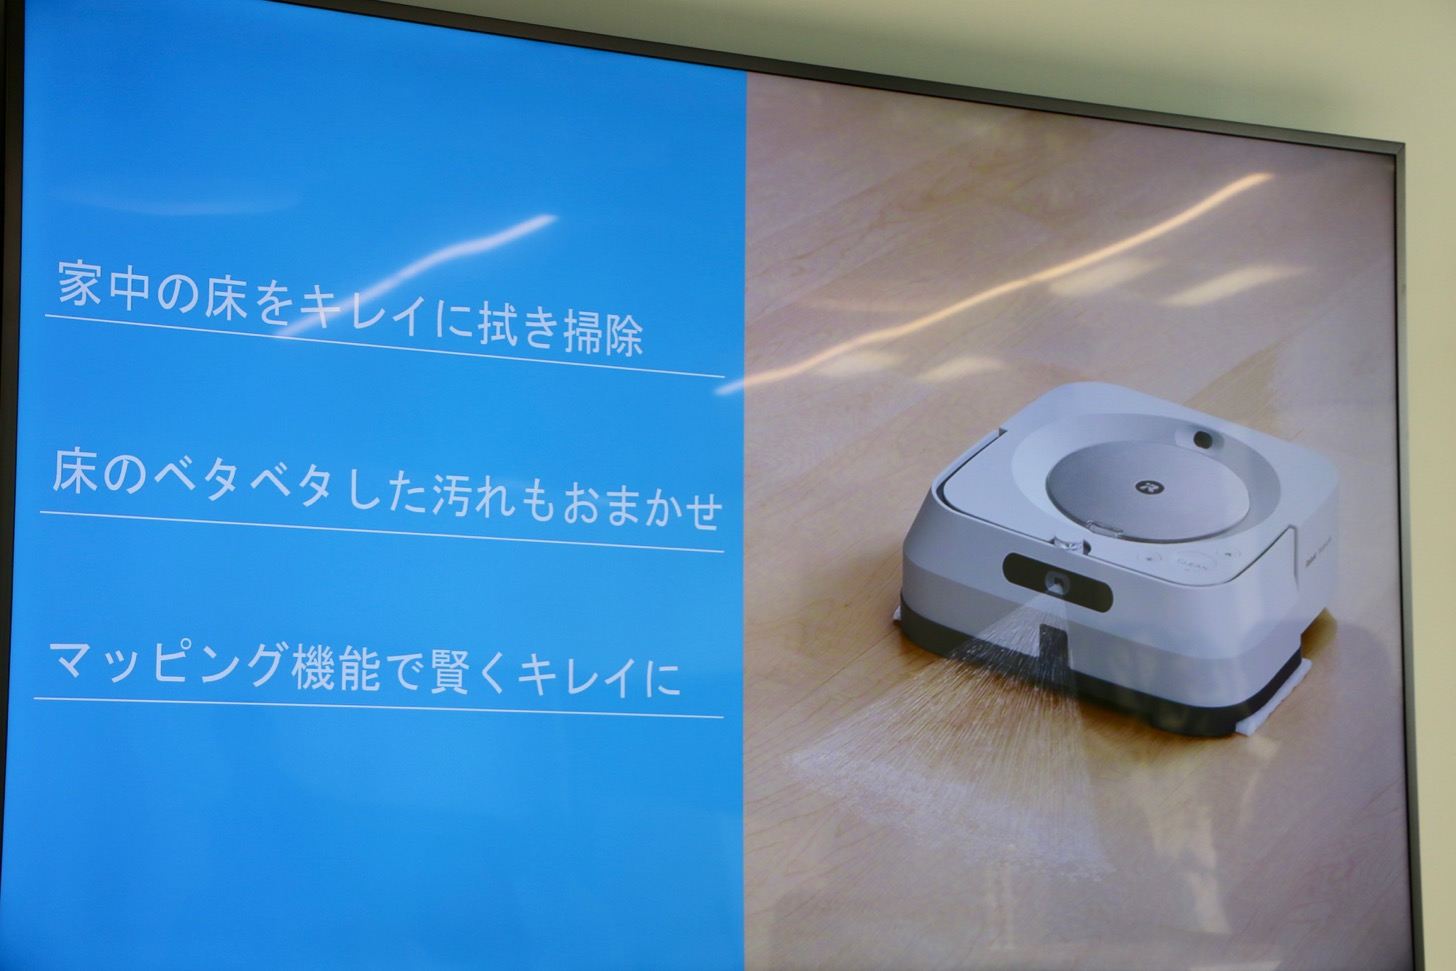 """Features of floor cleaning robot """"Blur budget m6"""""""